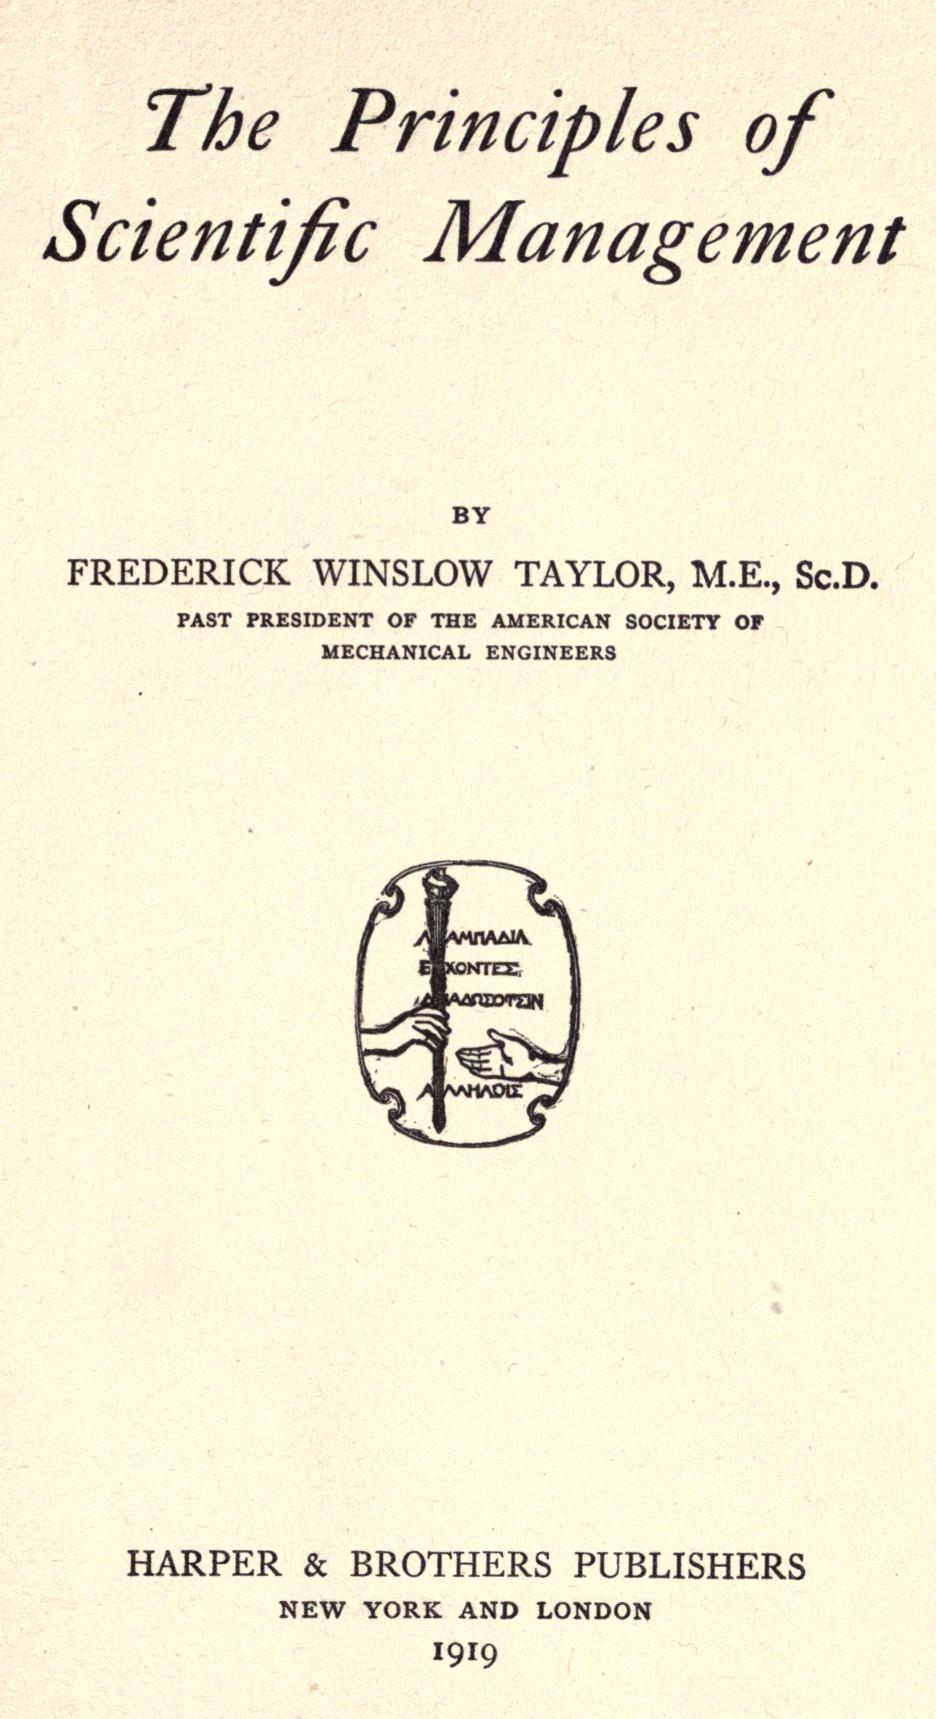 principles of frederick w taylor essay Ford vs taylor henry ford &amp frederick w taylor: a comparison of methods and principles early life ford's early life henry ford was.